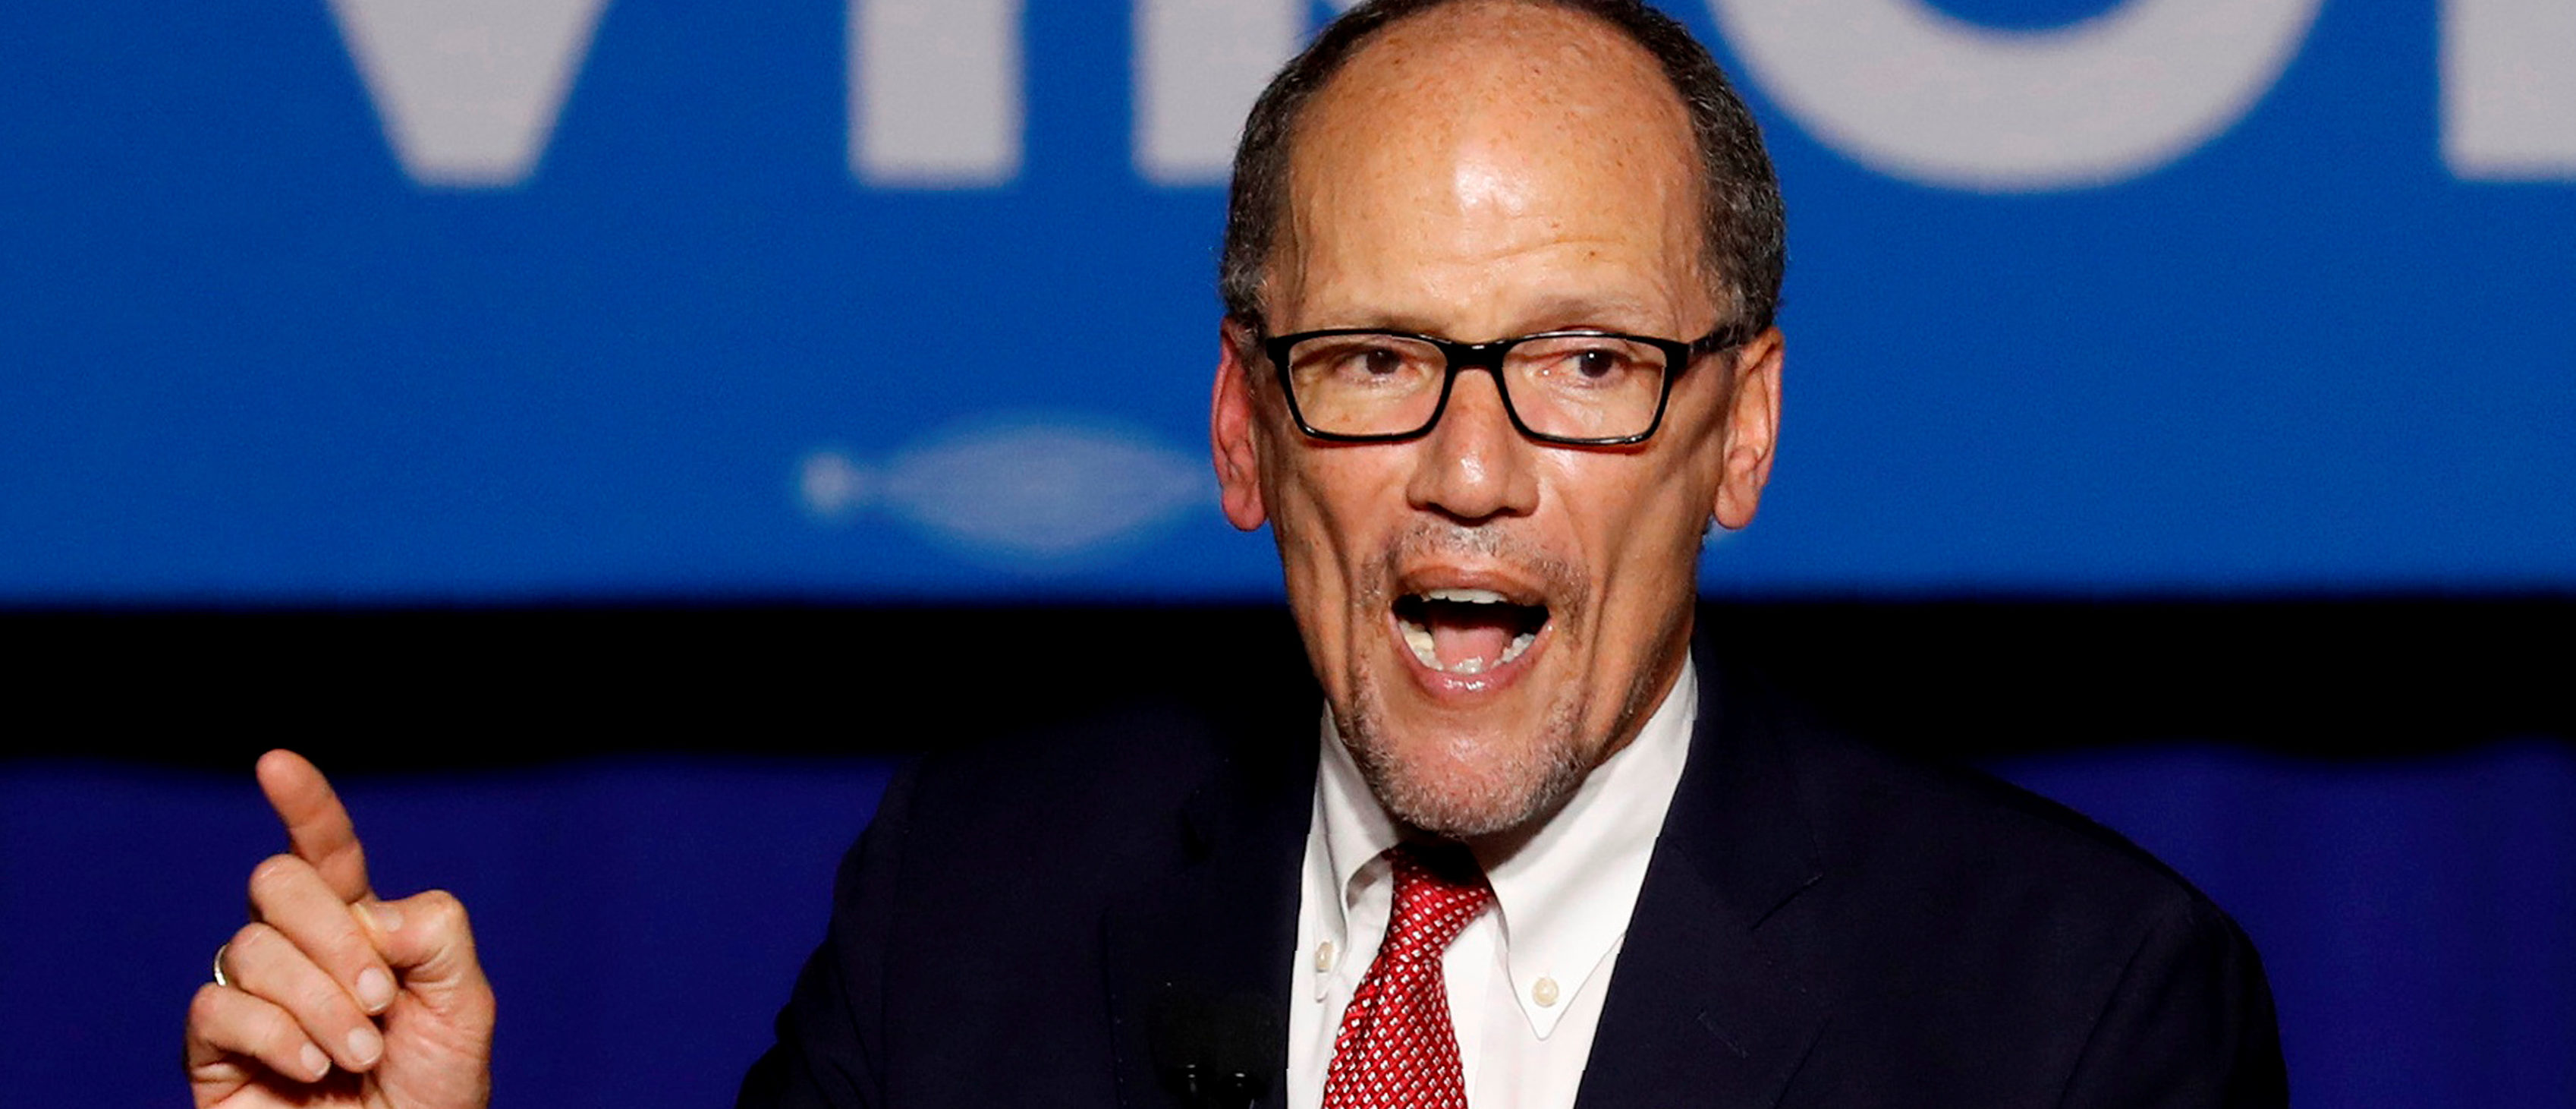 DNC Chair Tom Perez Forgets Dems Already Lost Ohio's 12th District